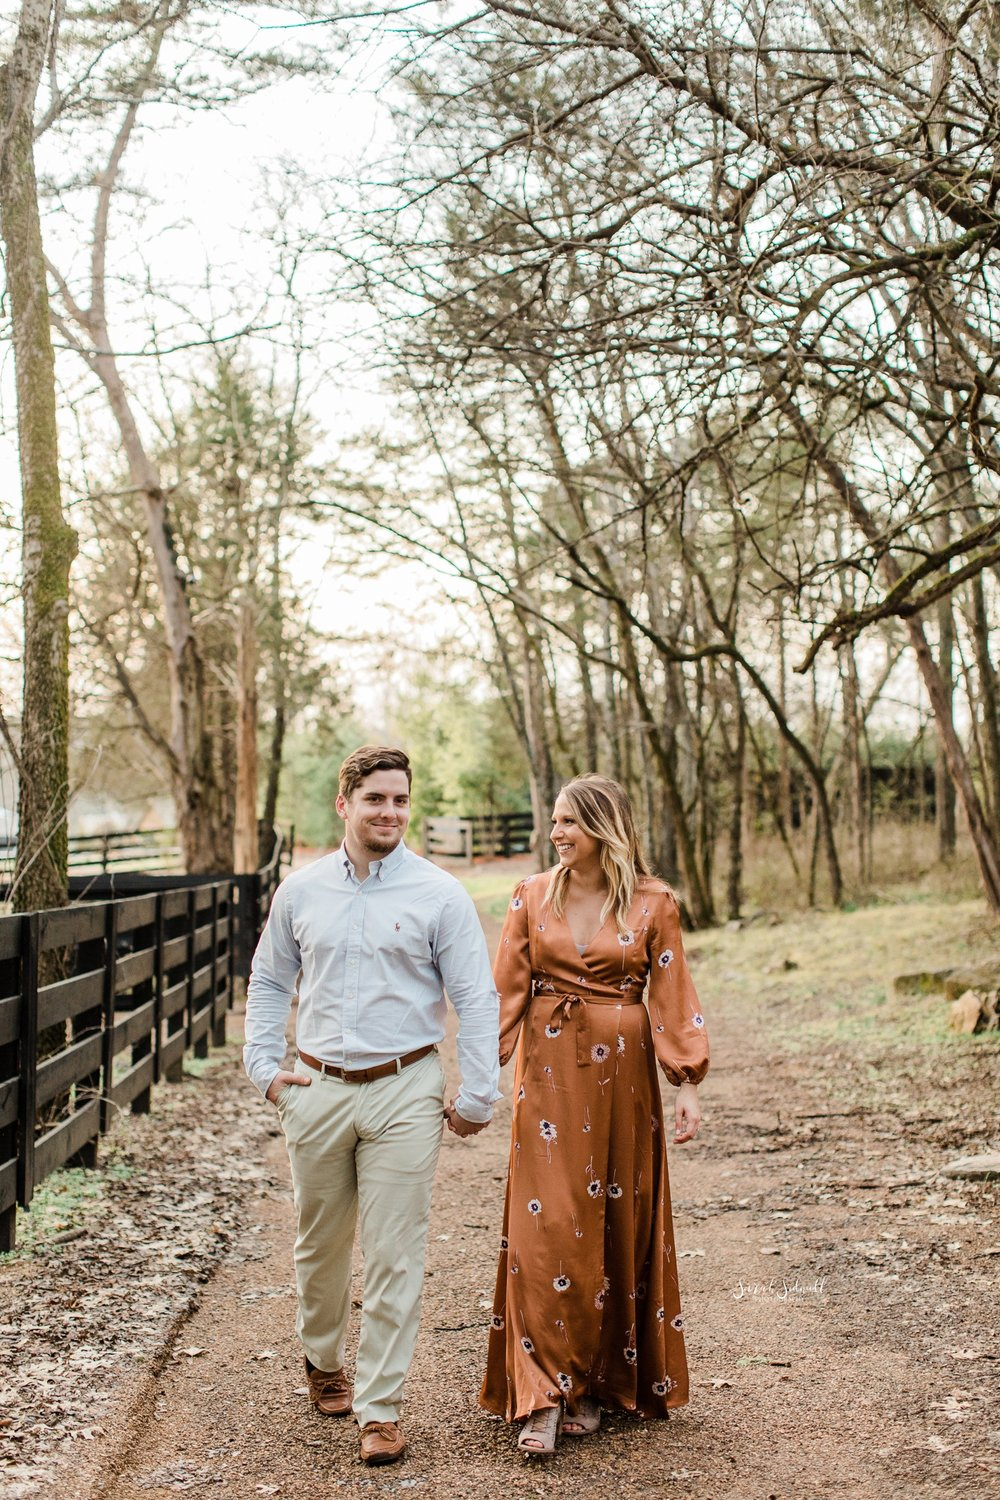 A couple are walking down a dirt path and enjoying a sunny day.